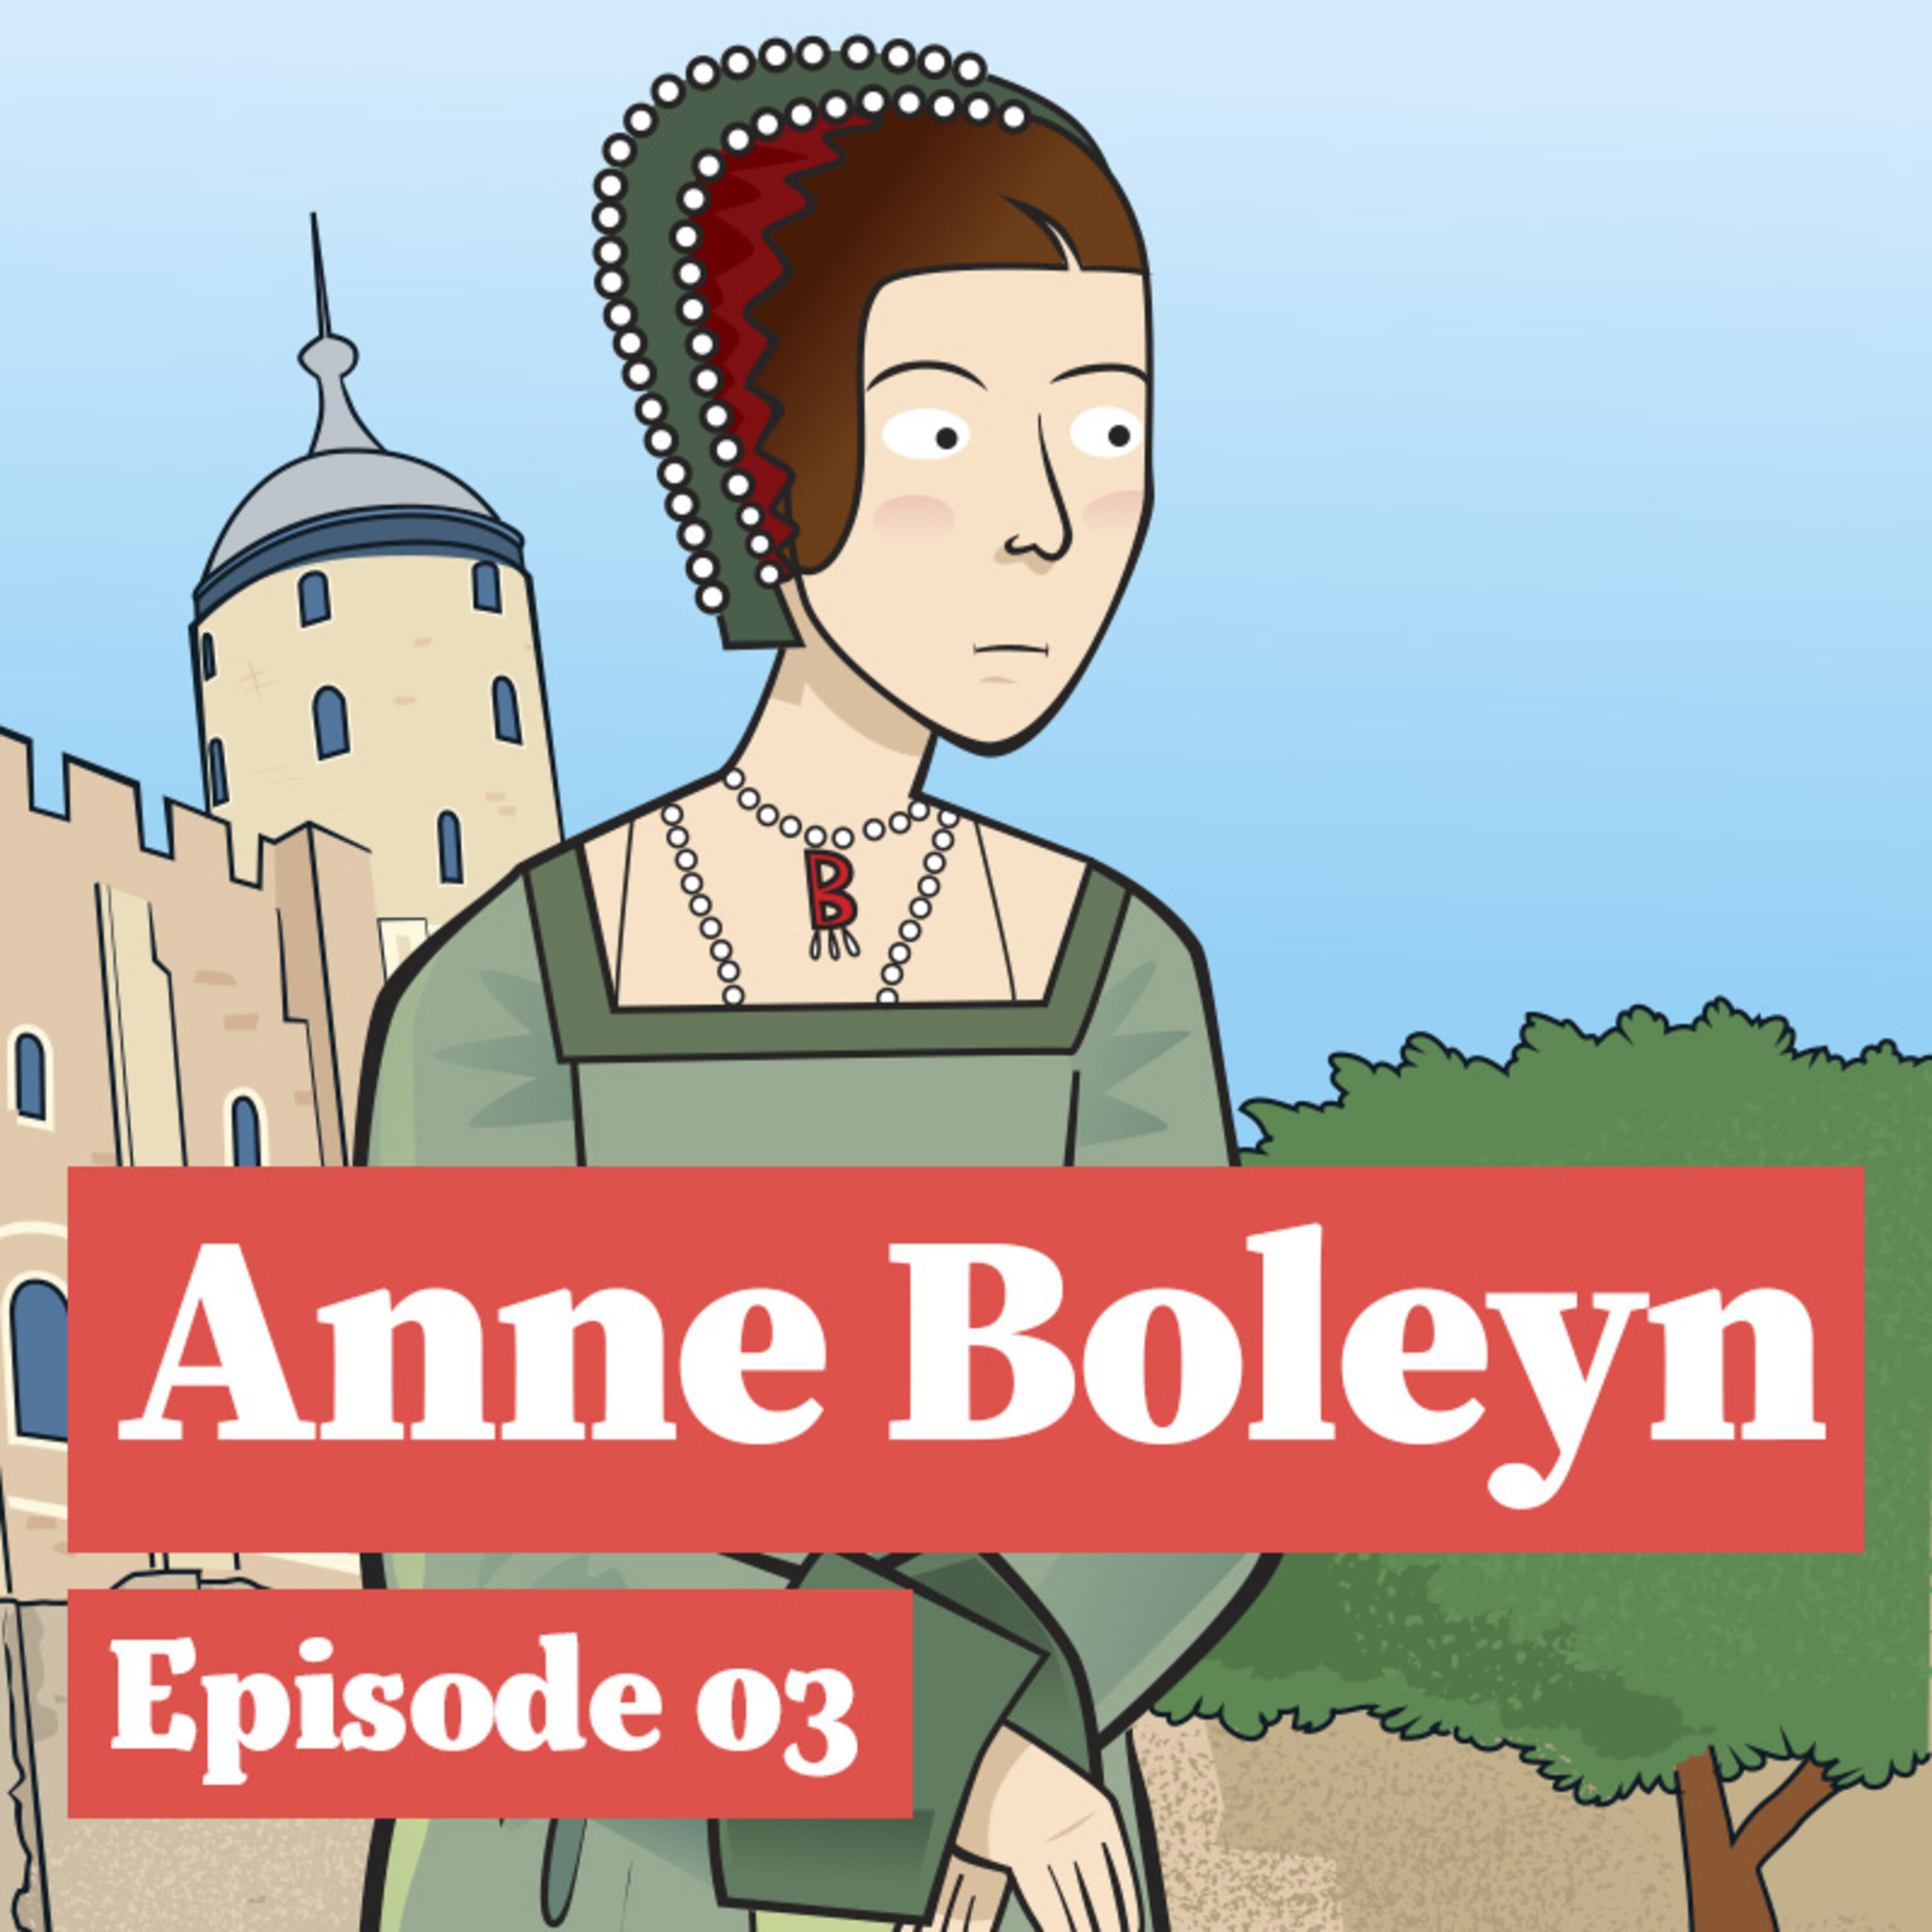 Anne Boleyn and how a Queen became a prisoner